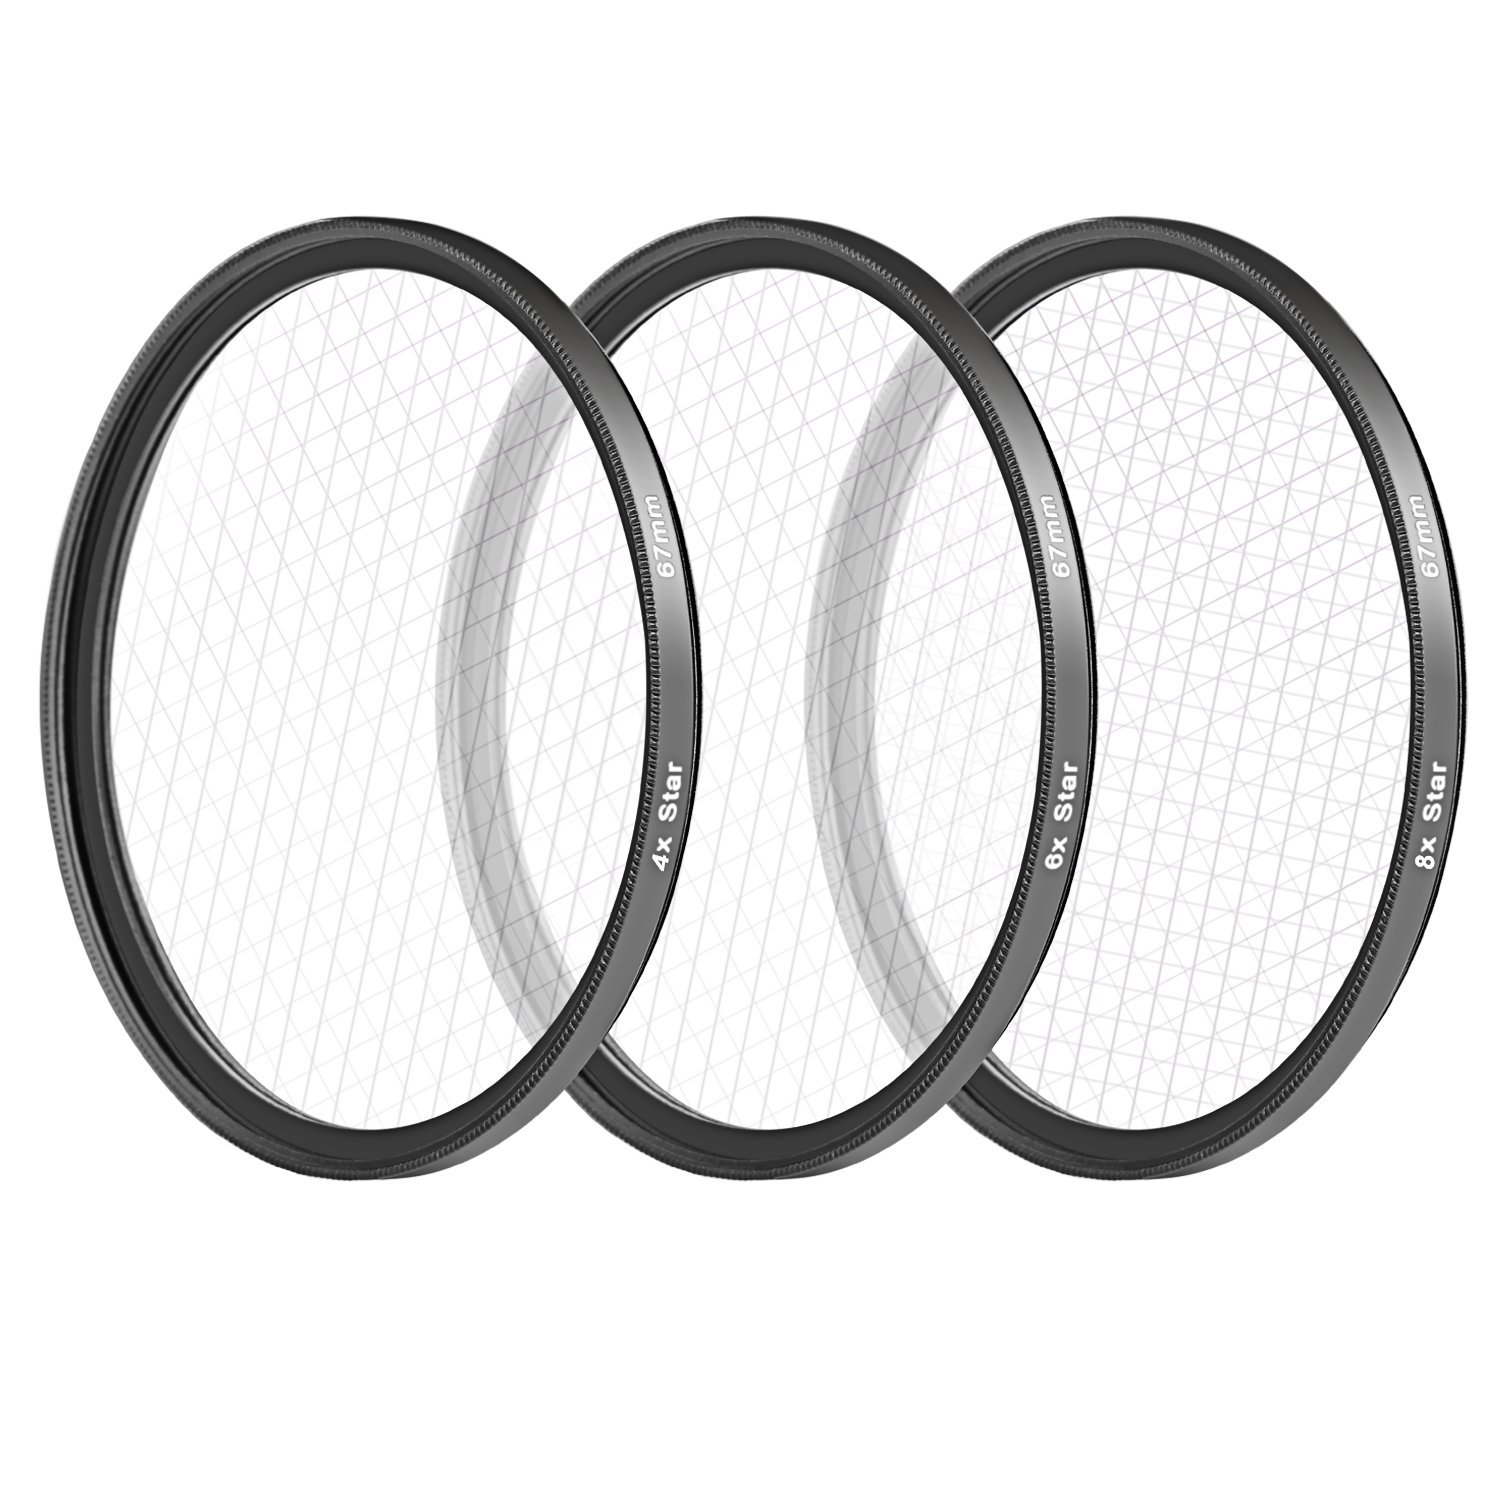 Neewer 67MM 3 Pieces Points Star Lens Filters Kit for Canon EOS Rebel T5i T4i T3i T3 T2i T1i DSLR Camera with a 18-135MM Zoom Lens, Made of HD Glass and Aluminum Frame Material (Black) by Neewer